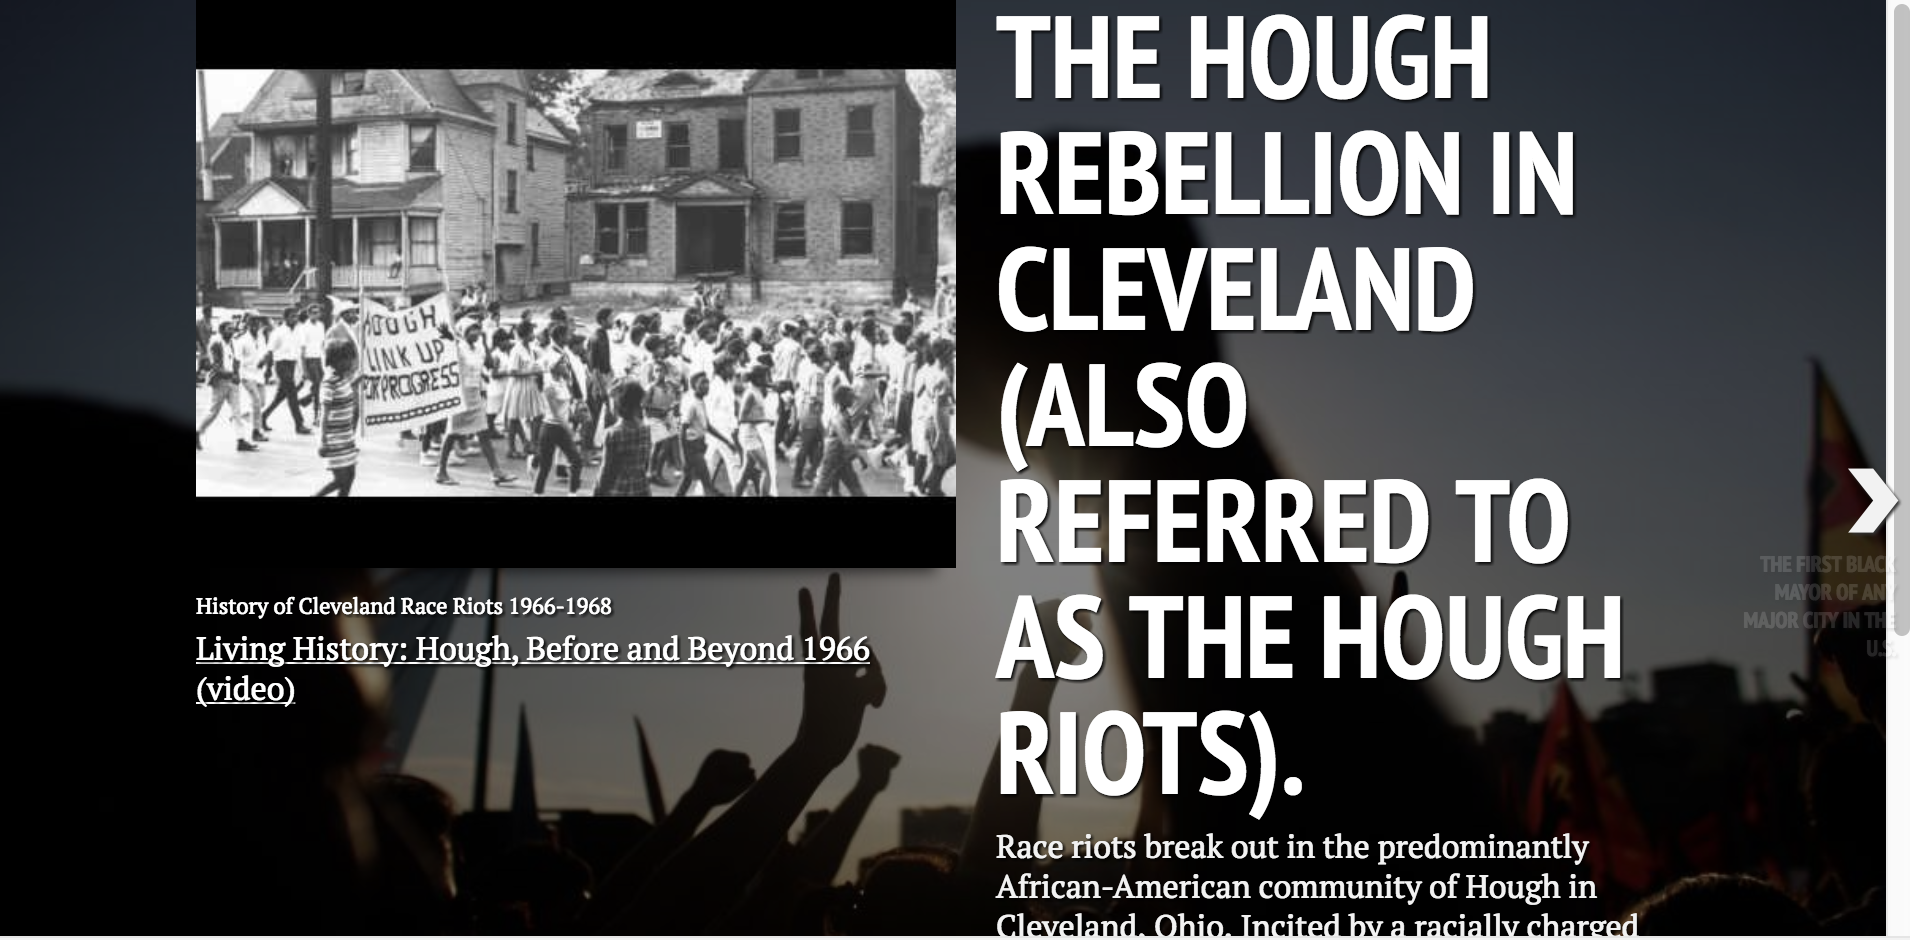 """Dispatches From Cleveland : """"Timeline of Injustice""""  A chronology of injustice from the 1960's to today covering landmark national legal cases, incidents of police violence, and national trends of discrimination against marginalized people that deeply effect the greater Cleveland area. Click here to view ."""